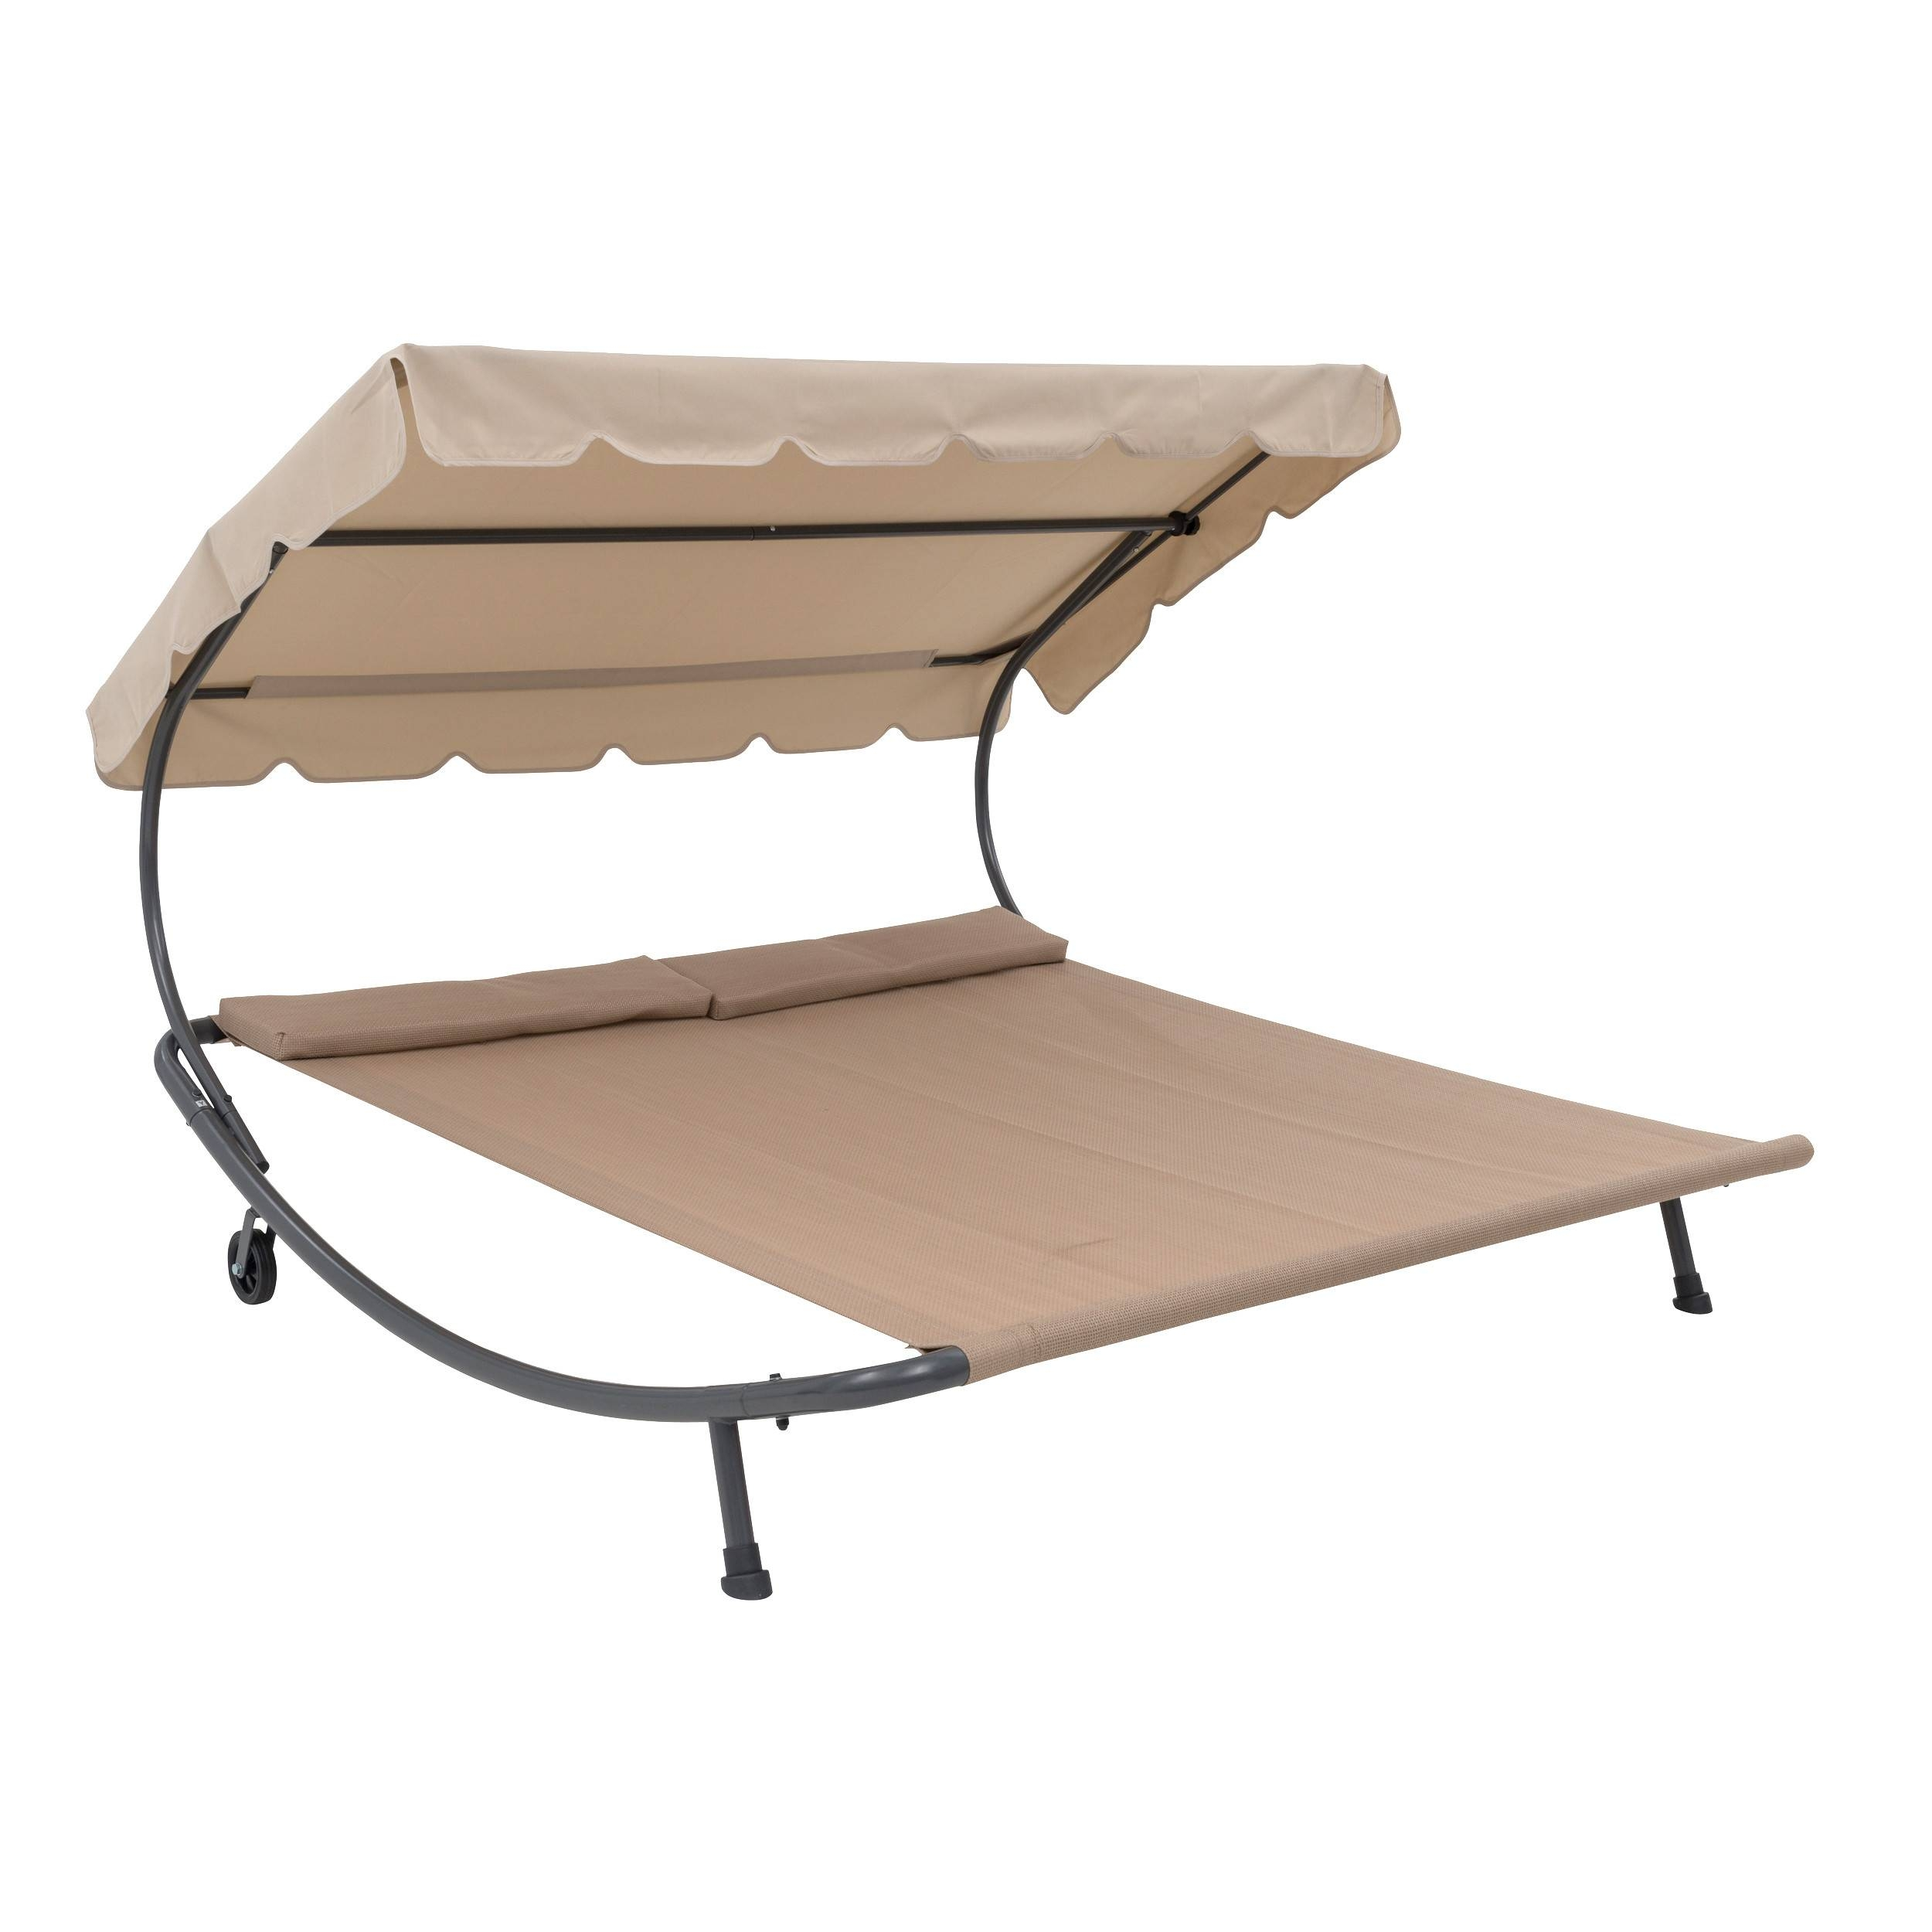 Furniture: Boppy Lounger | Lifestyle Solutions Ravenna Euro With Regard To Euro Loungers (View 15 of 15)